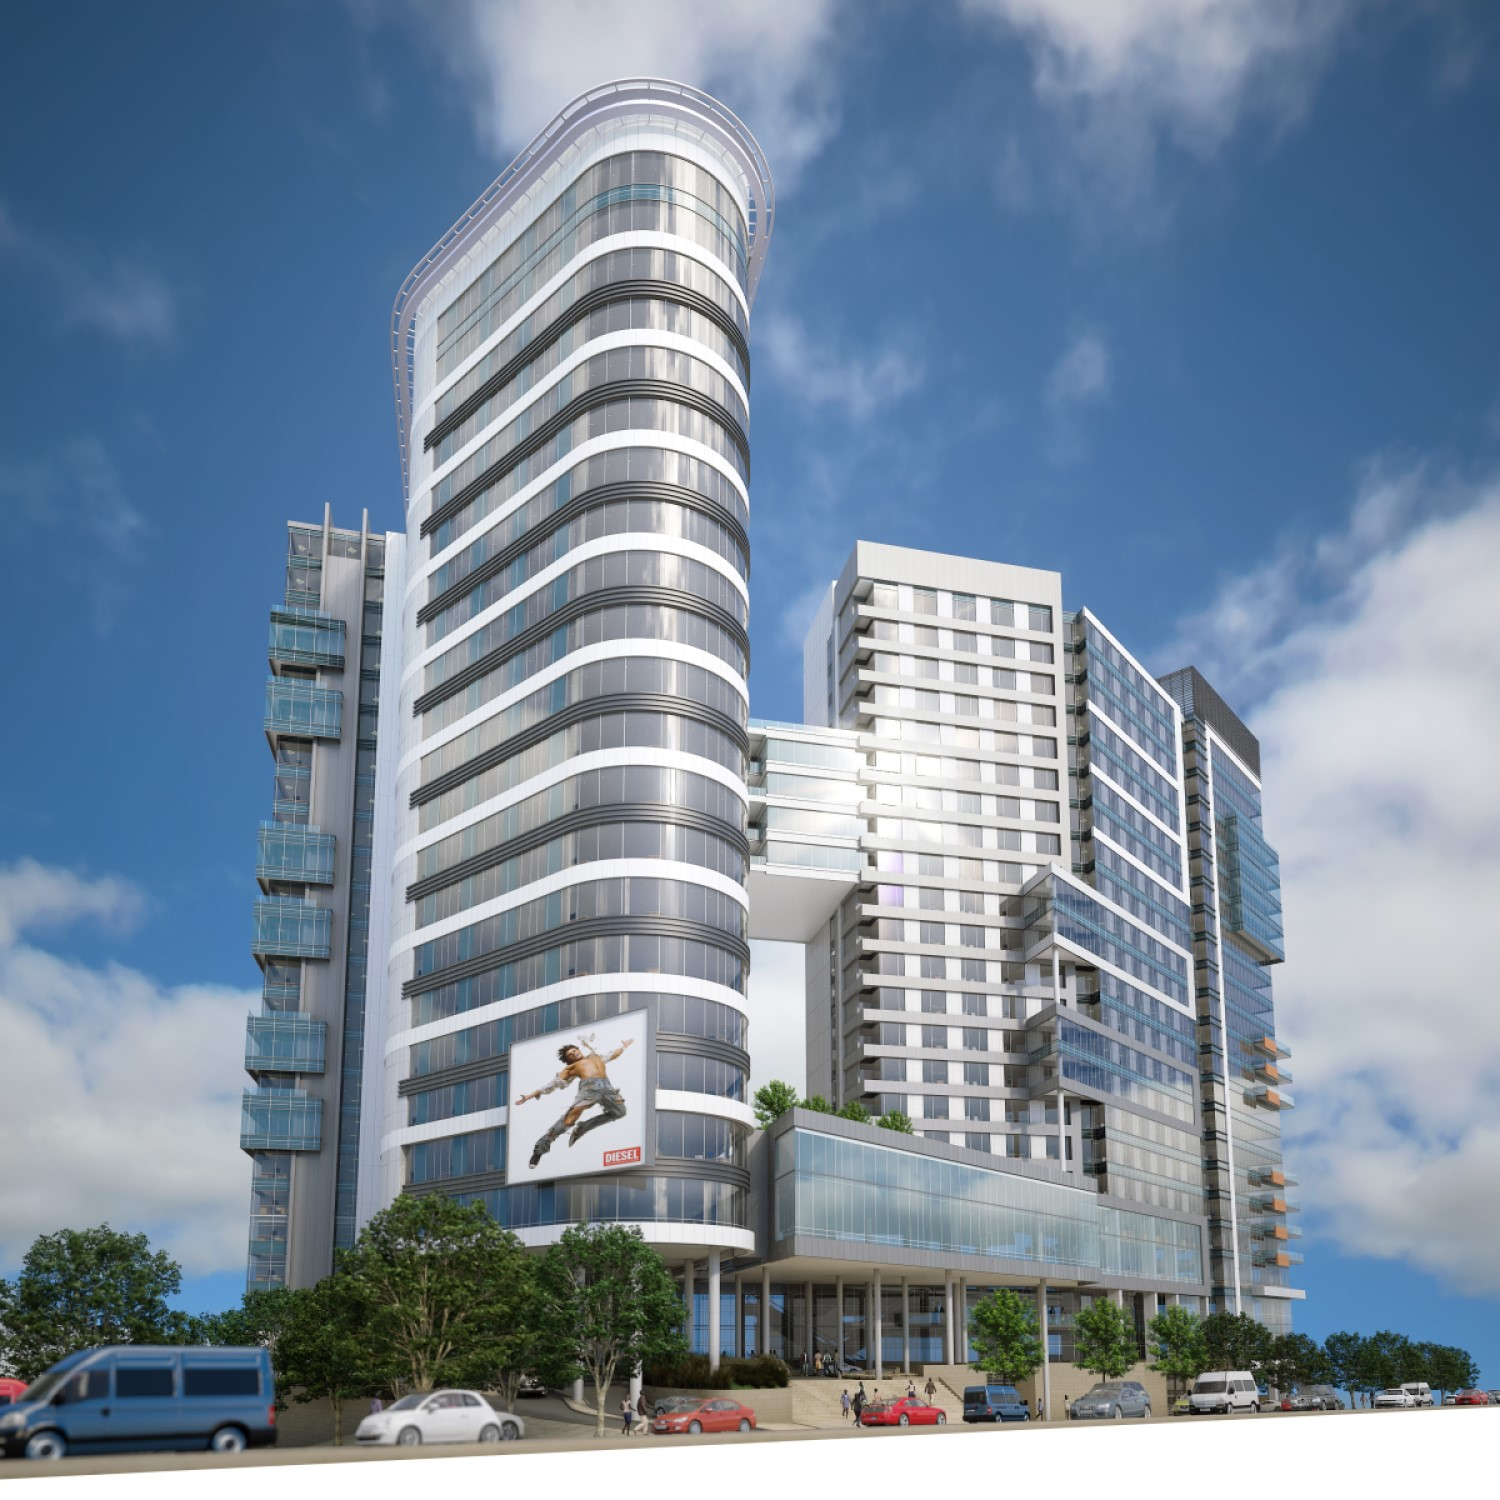 Asciopolis - Location: Sandton, Johannesburg South AfricaType: 21 Storey Mixed UseService: Civil and StructuralProject Cost: R 300 000 000.00